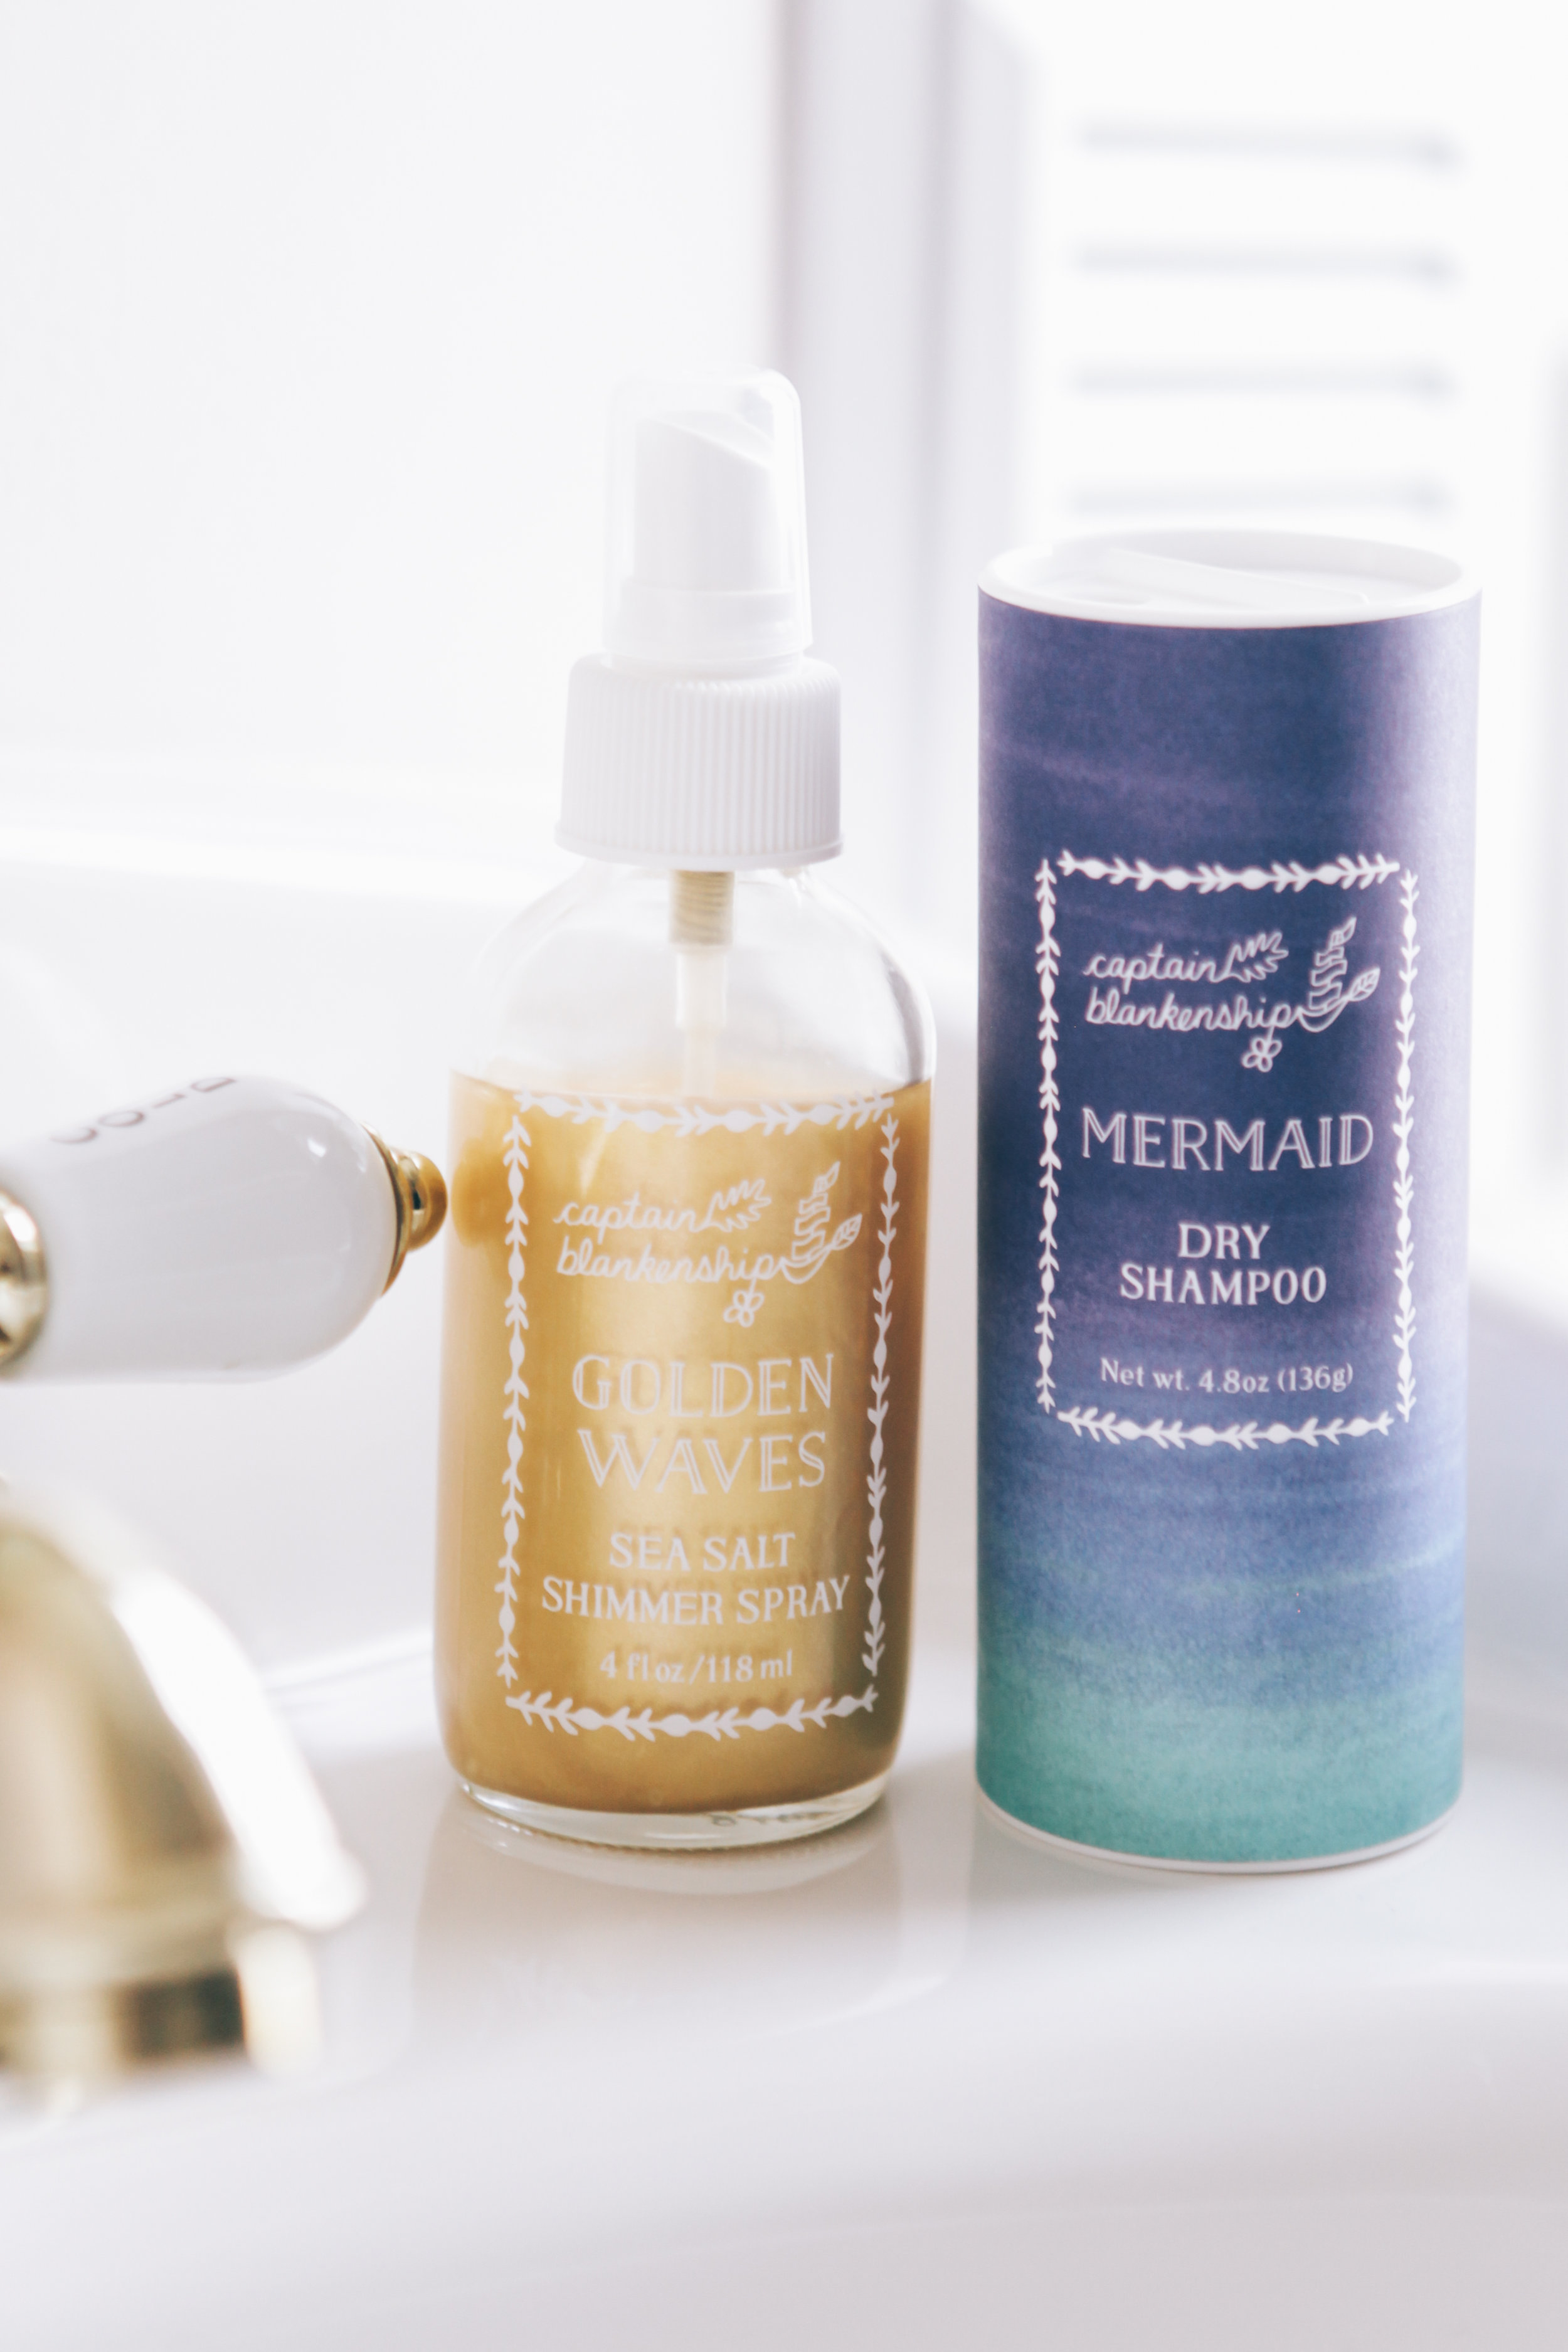 (L to R) Captain Blankenship Golden Waves Sea Salt Shimmer Spray; Captain Blankenship Mermaid Dry Shampoo